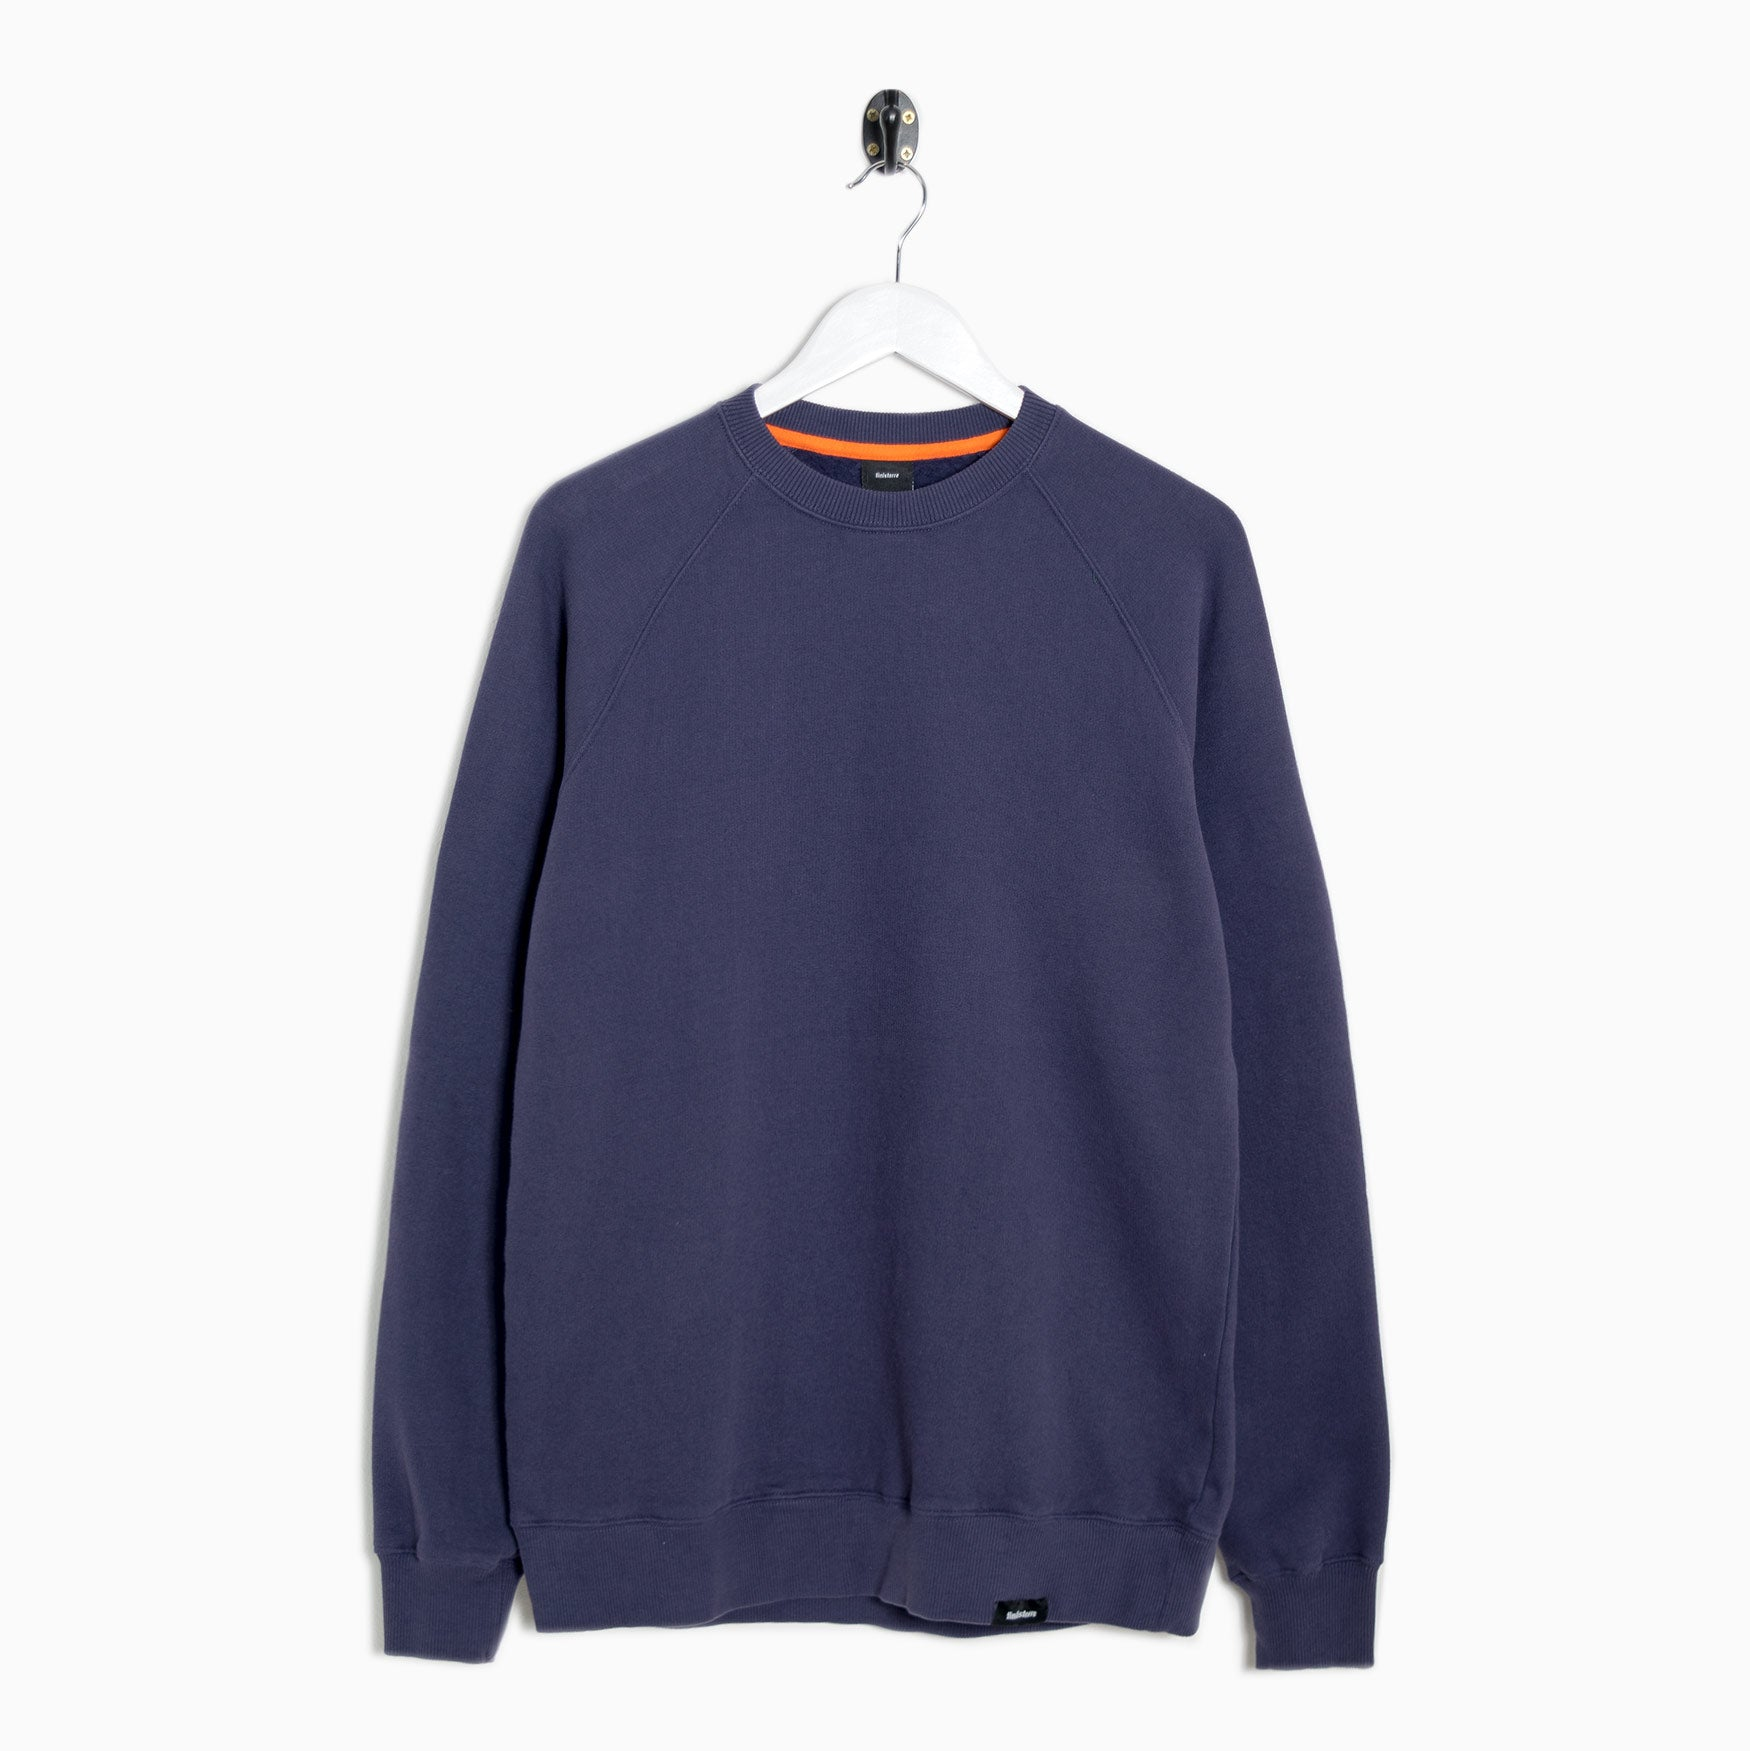 Finisterre Coho Sweat - Moonlight Blue